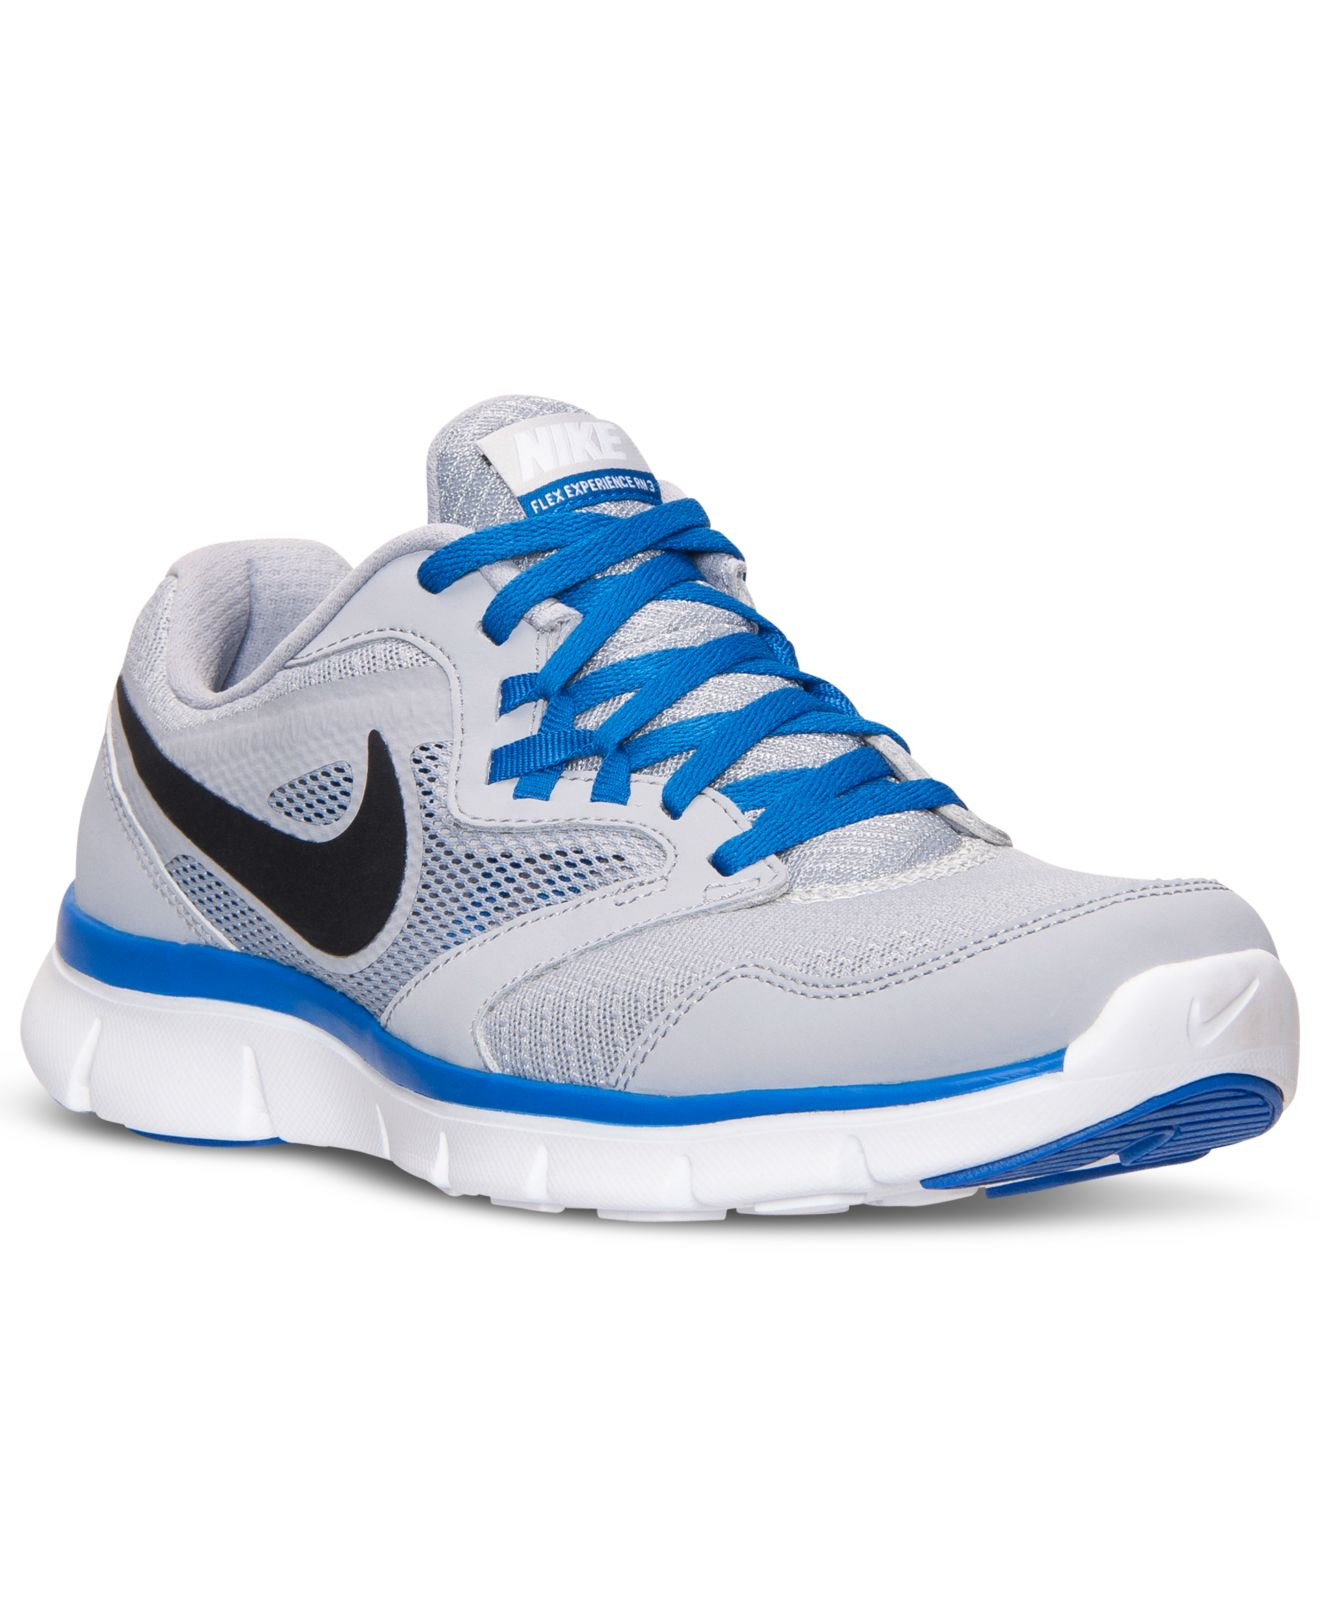 89ae1450d7c5 Lyst - Nike Men s Flex Experience Run 3 Wide Running Sneakers From ...